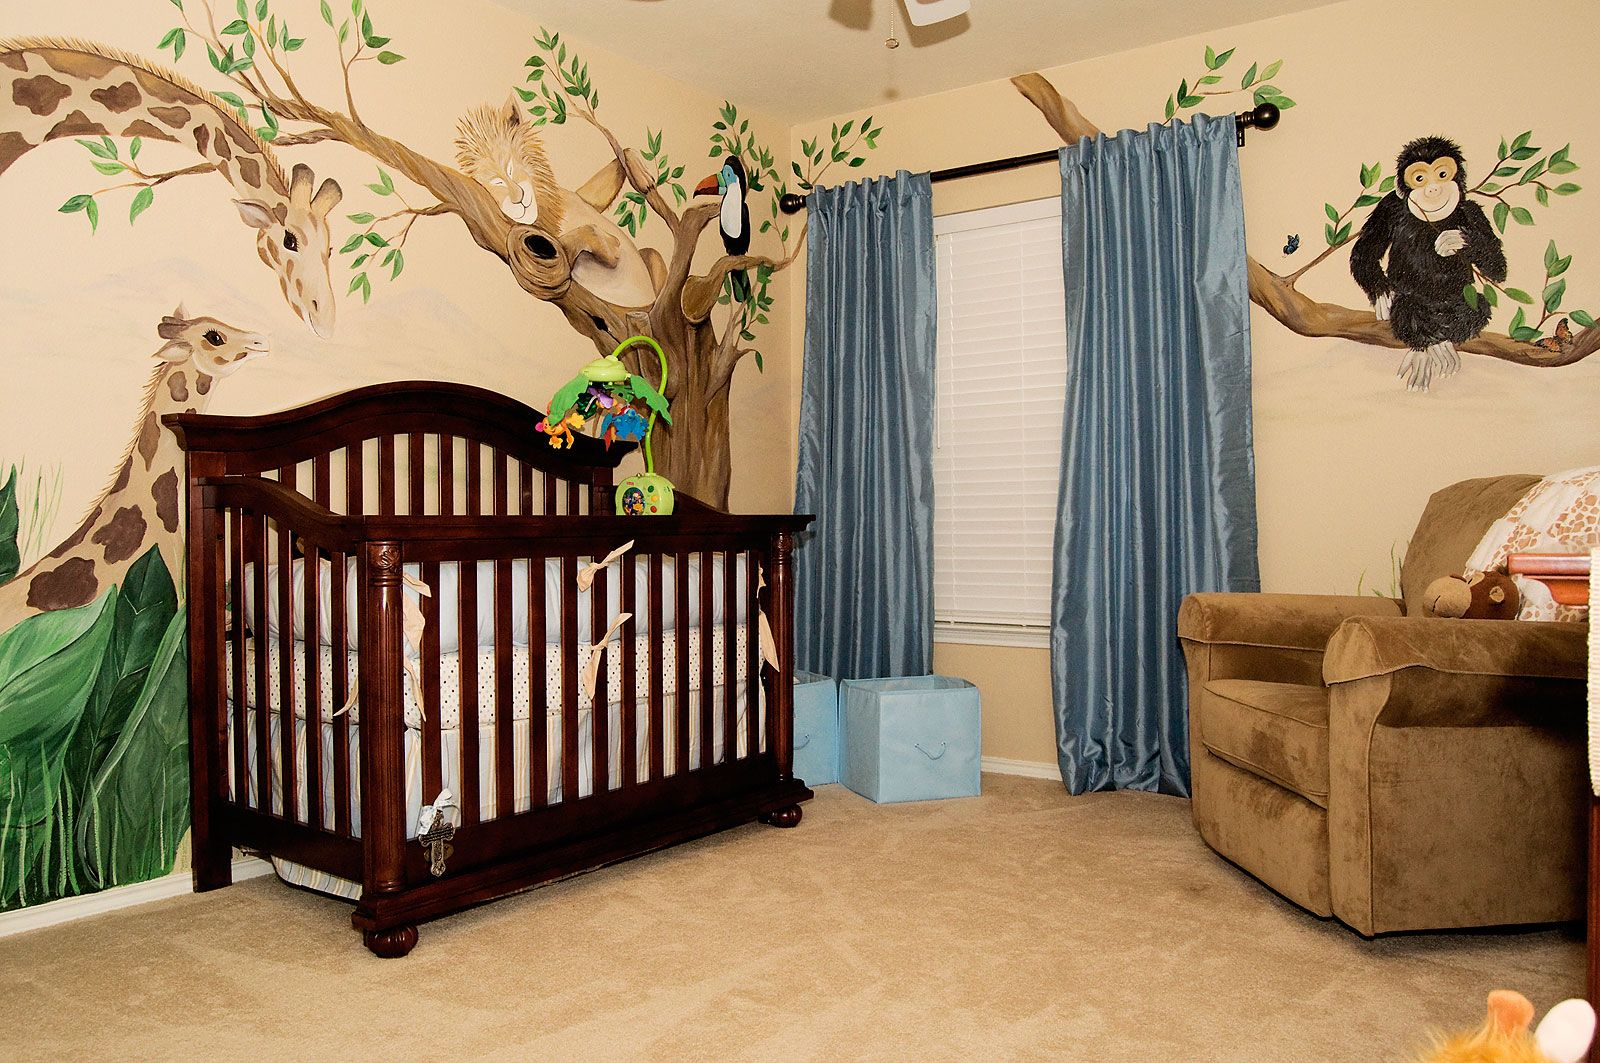 Home-Owner-Buff - HOB | Baby Nursery Room Design, Baby Room Themes, Nursery Room Design